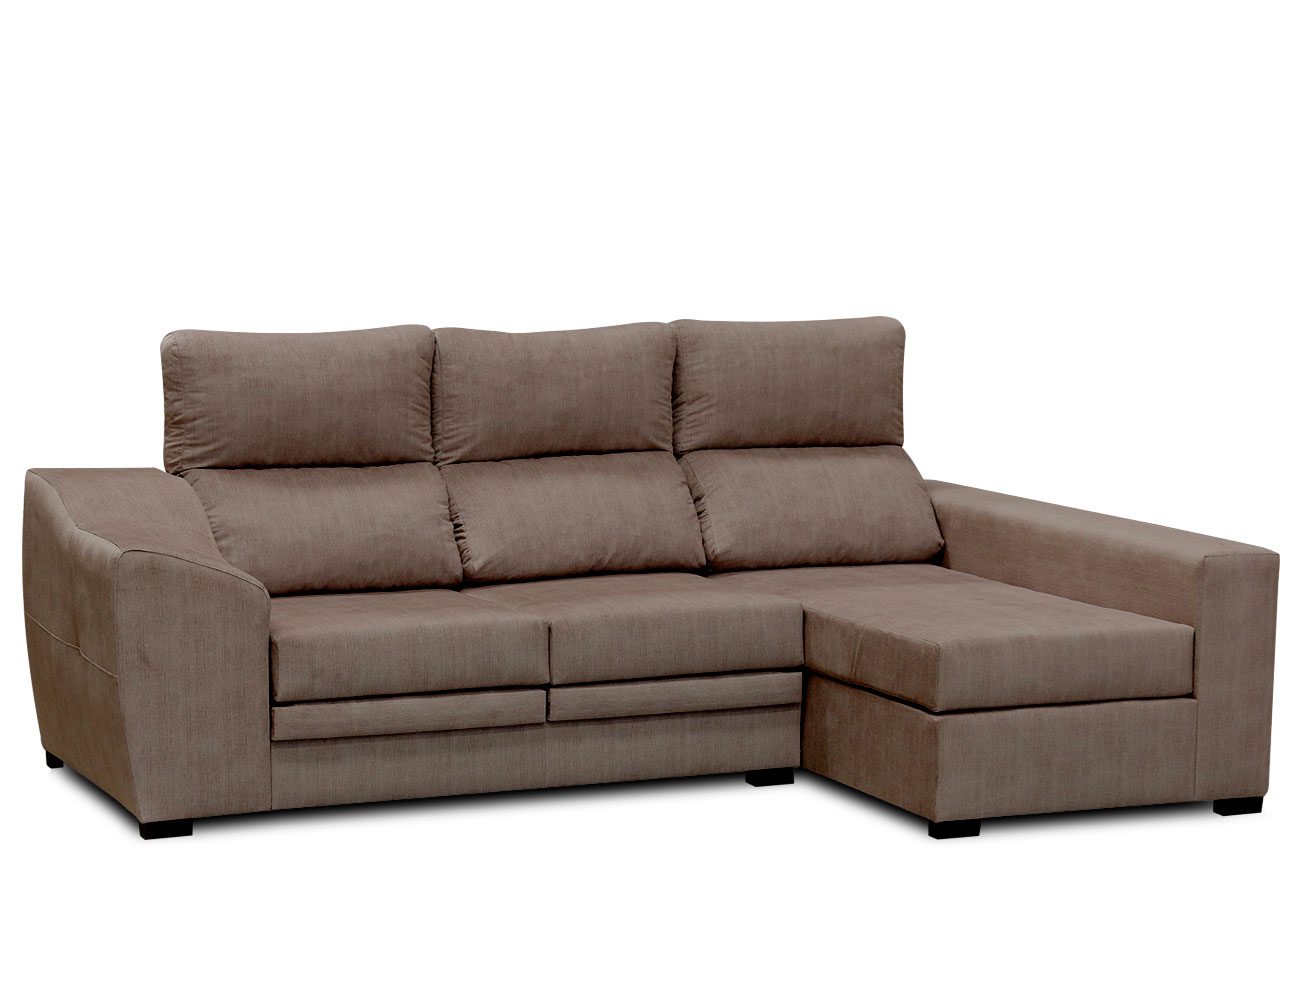 Sofa chaiselongue moderno moka 11